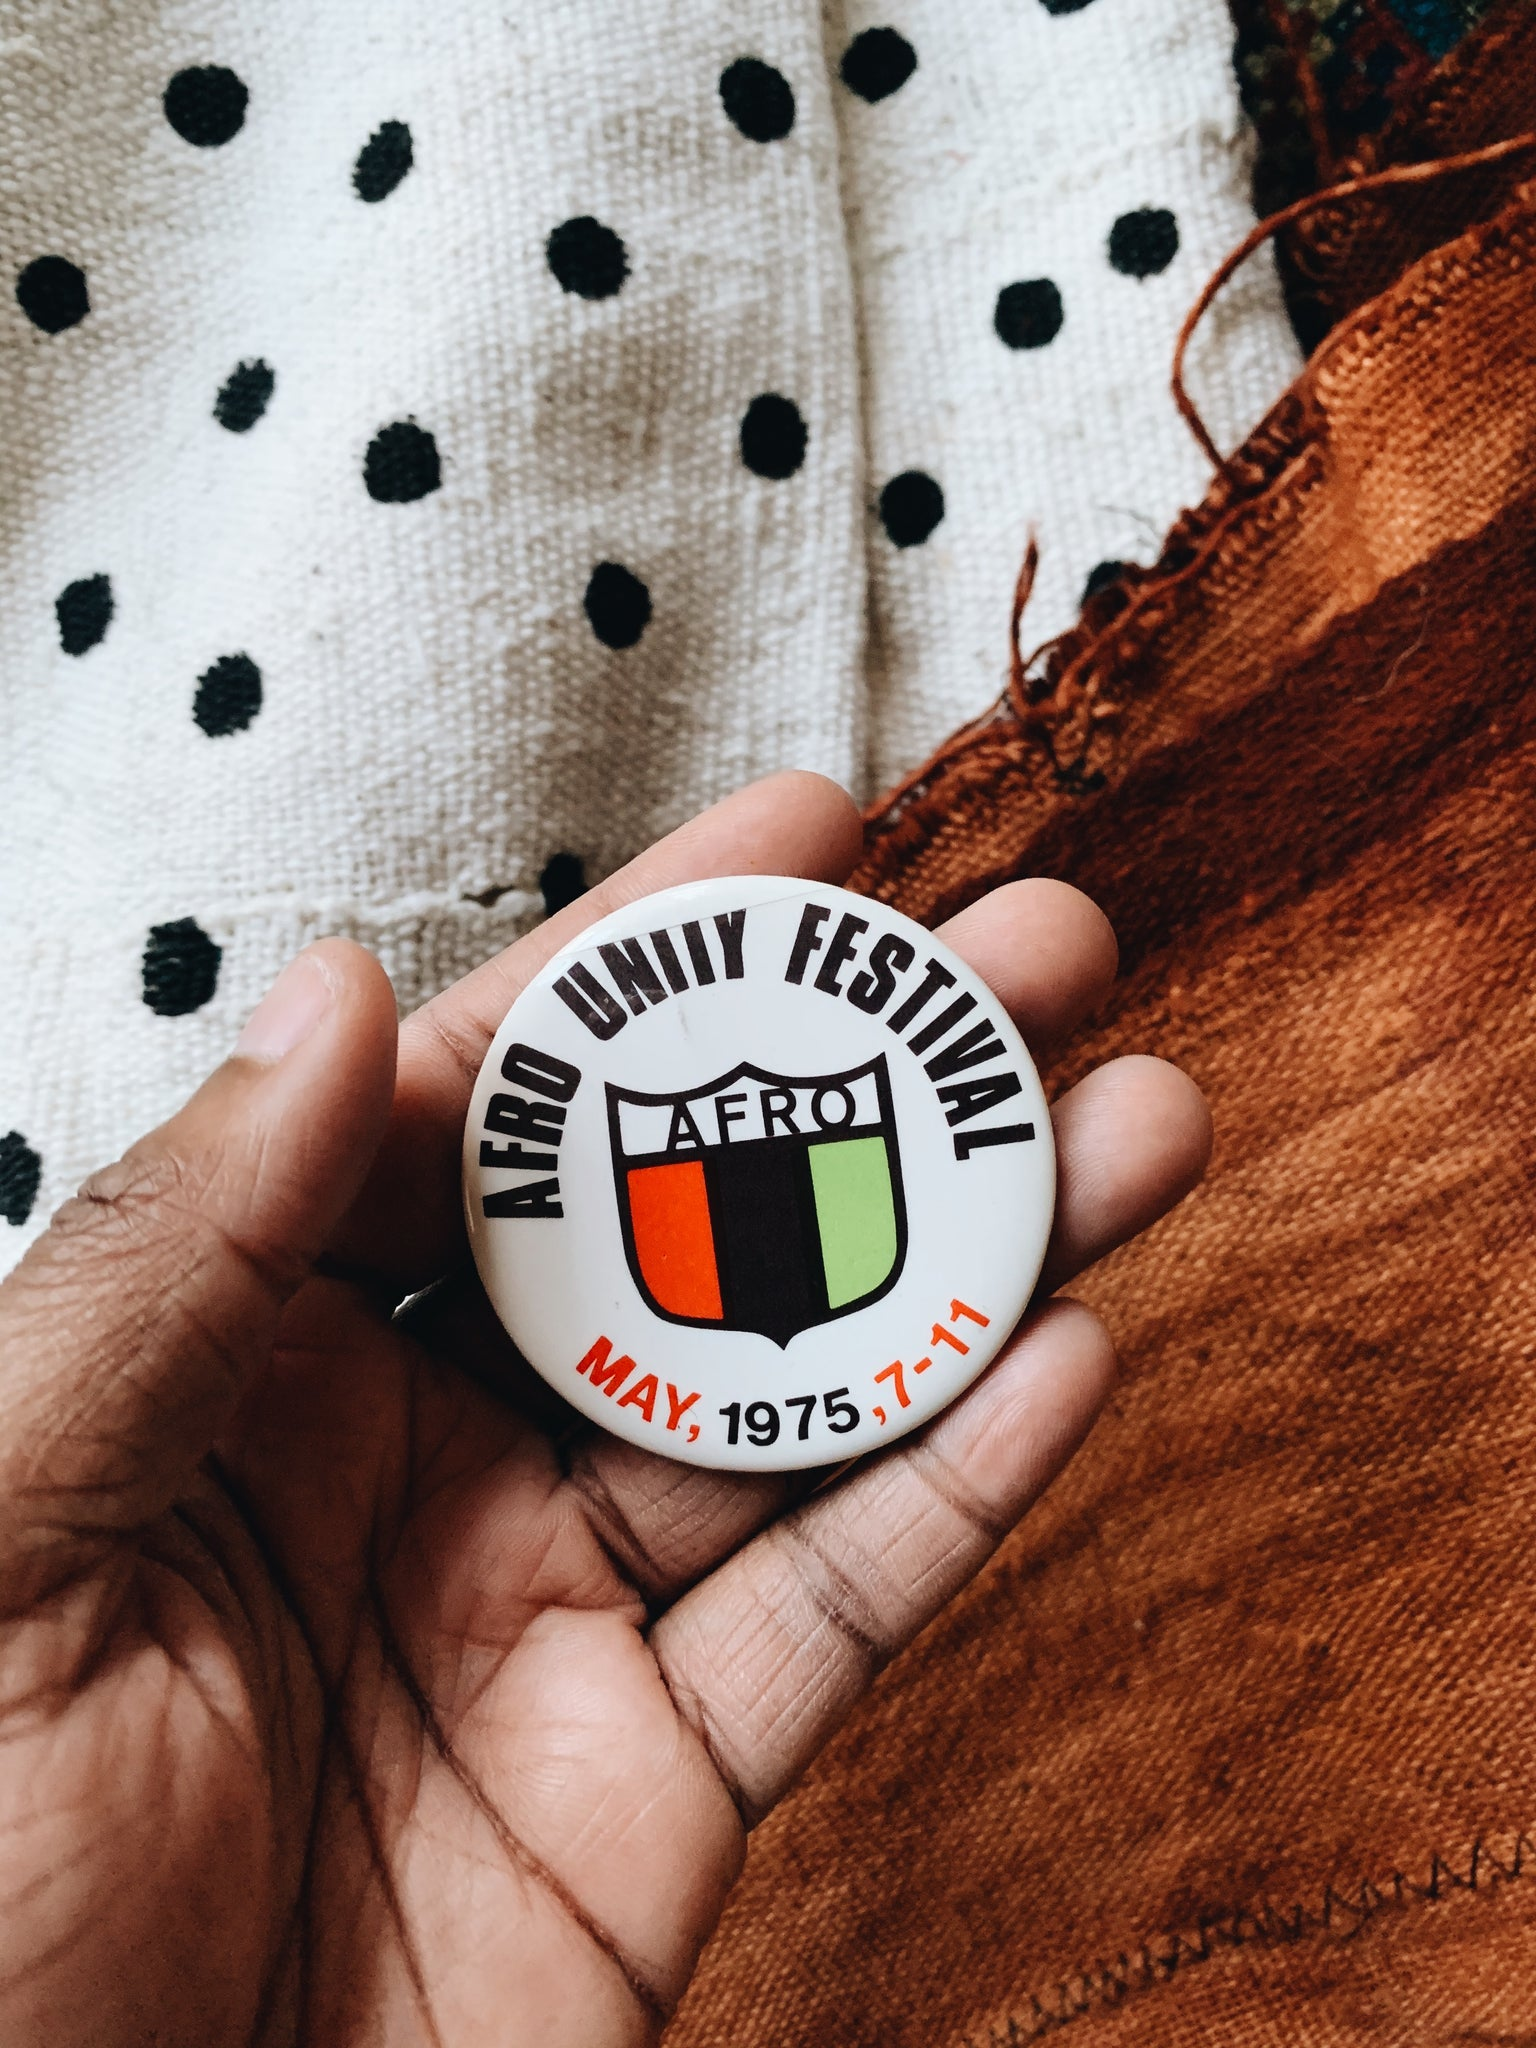 Vintage Afro Unity Festival Celluloid Pin (May 1975)